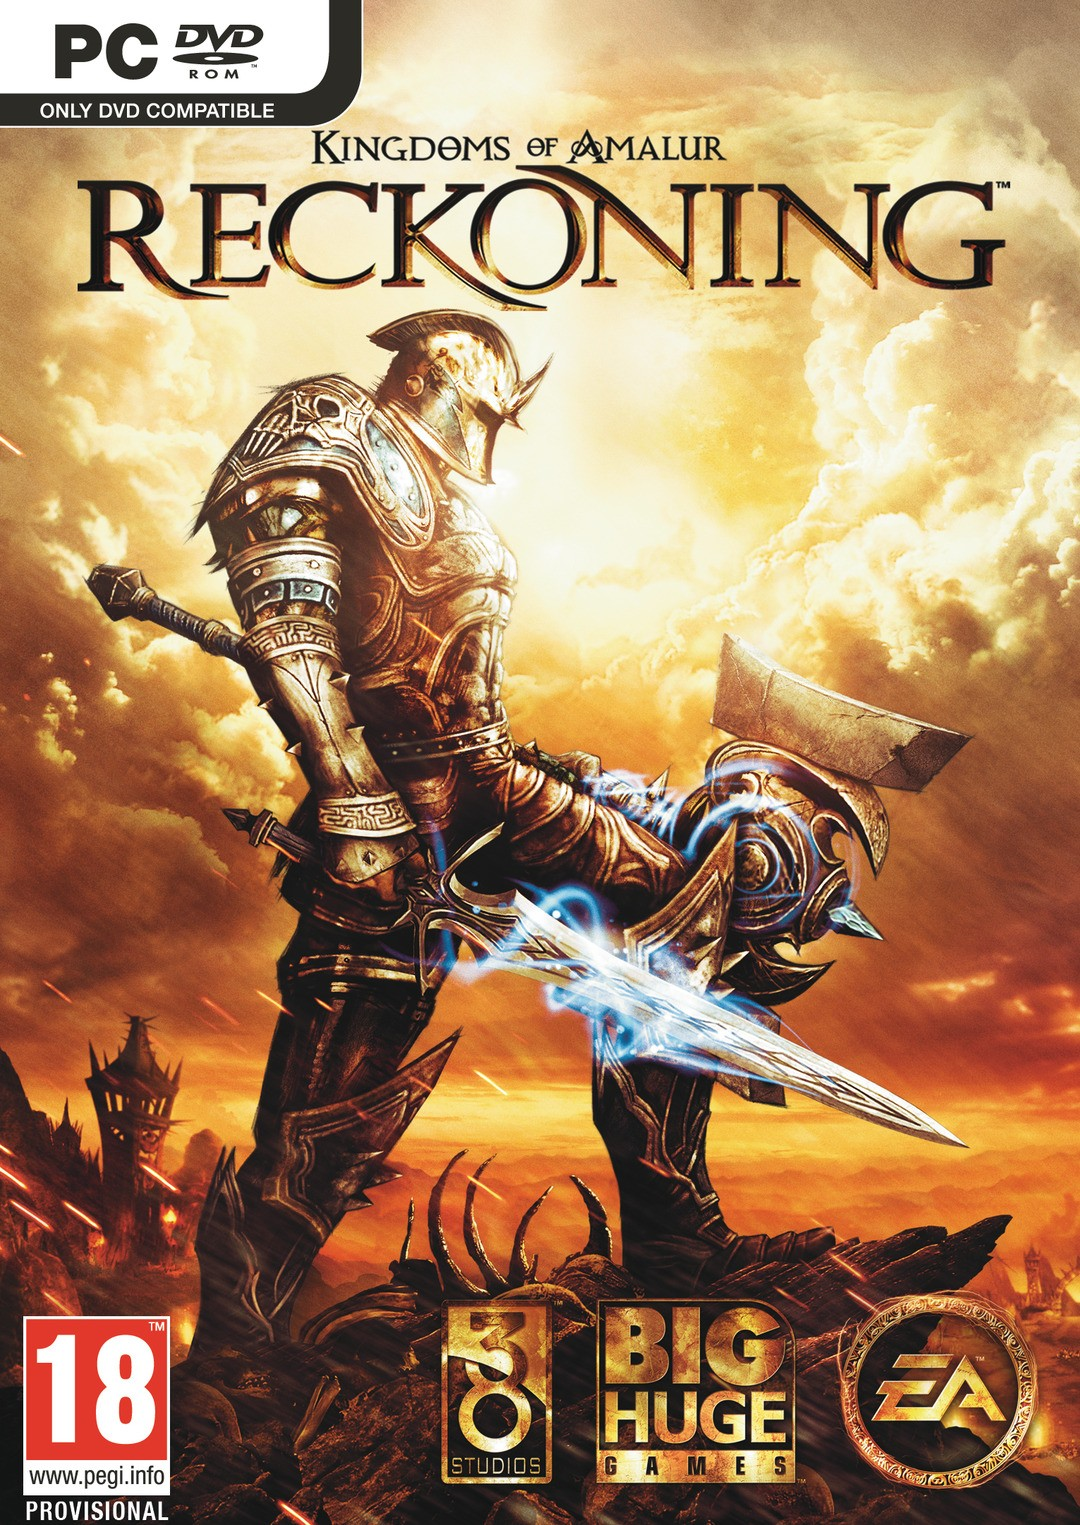 Kingdoms of Amalur : Reckoning + Crack [FRENCH] [PC] (Exclue) [MULTI]